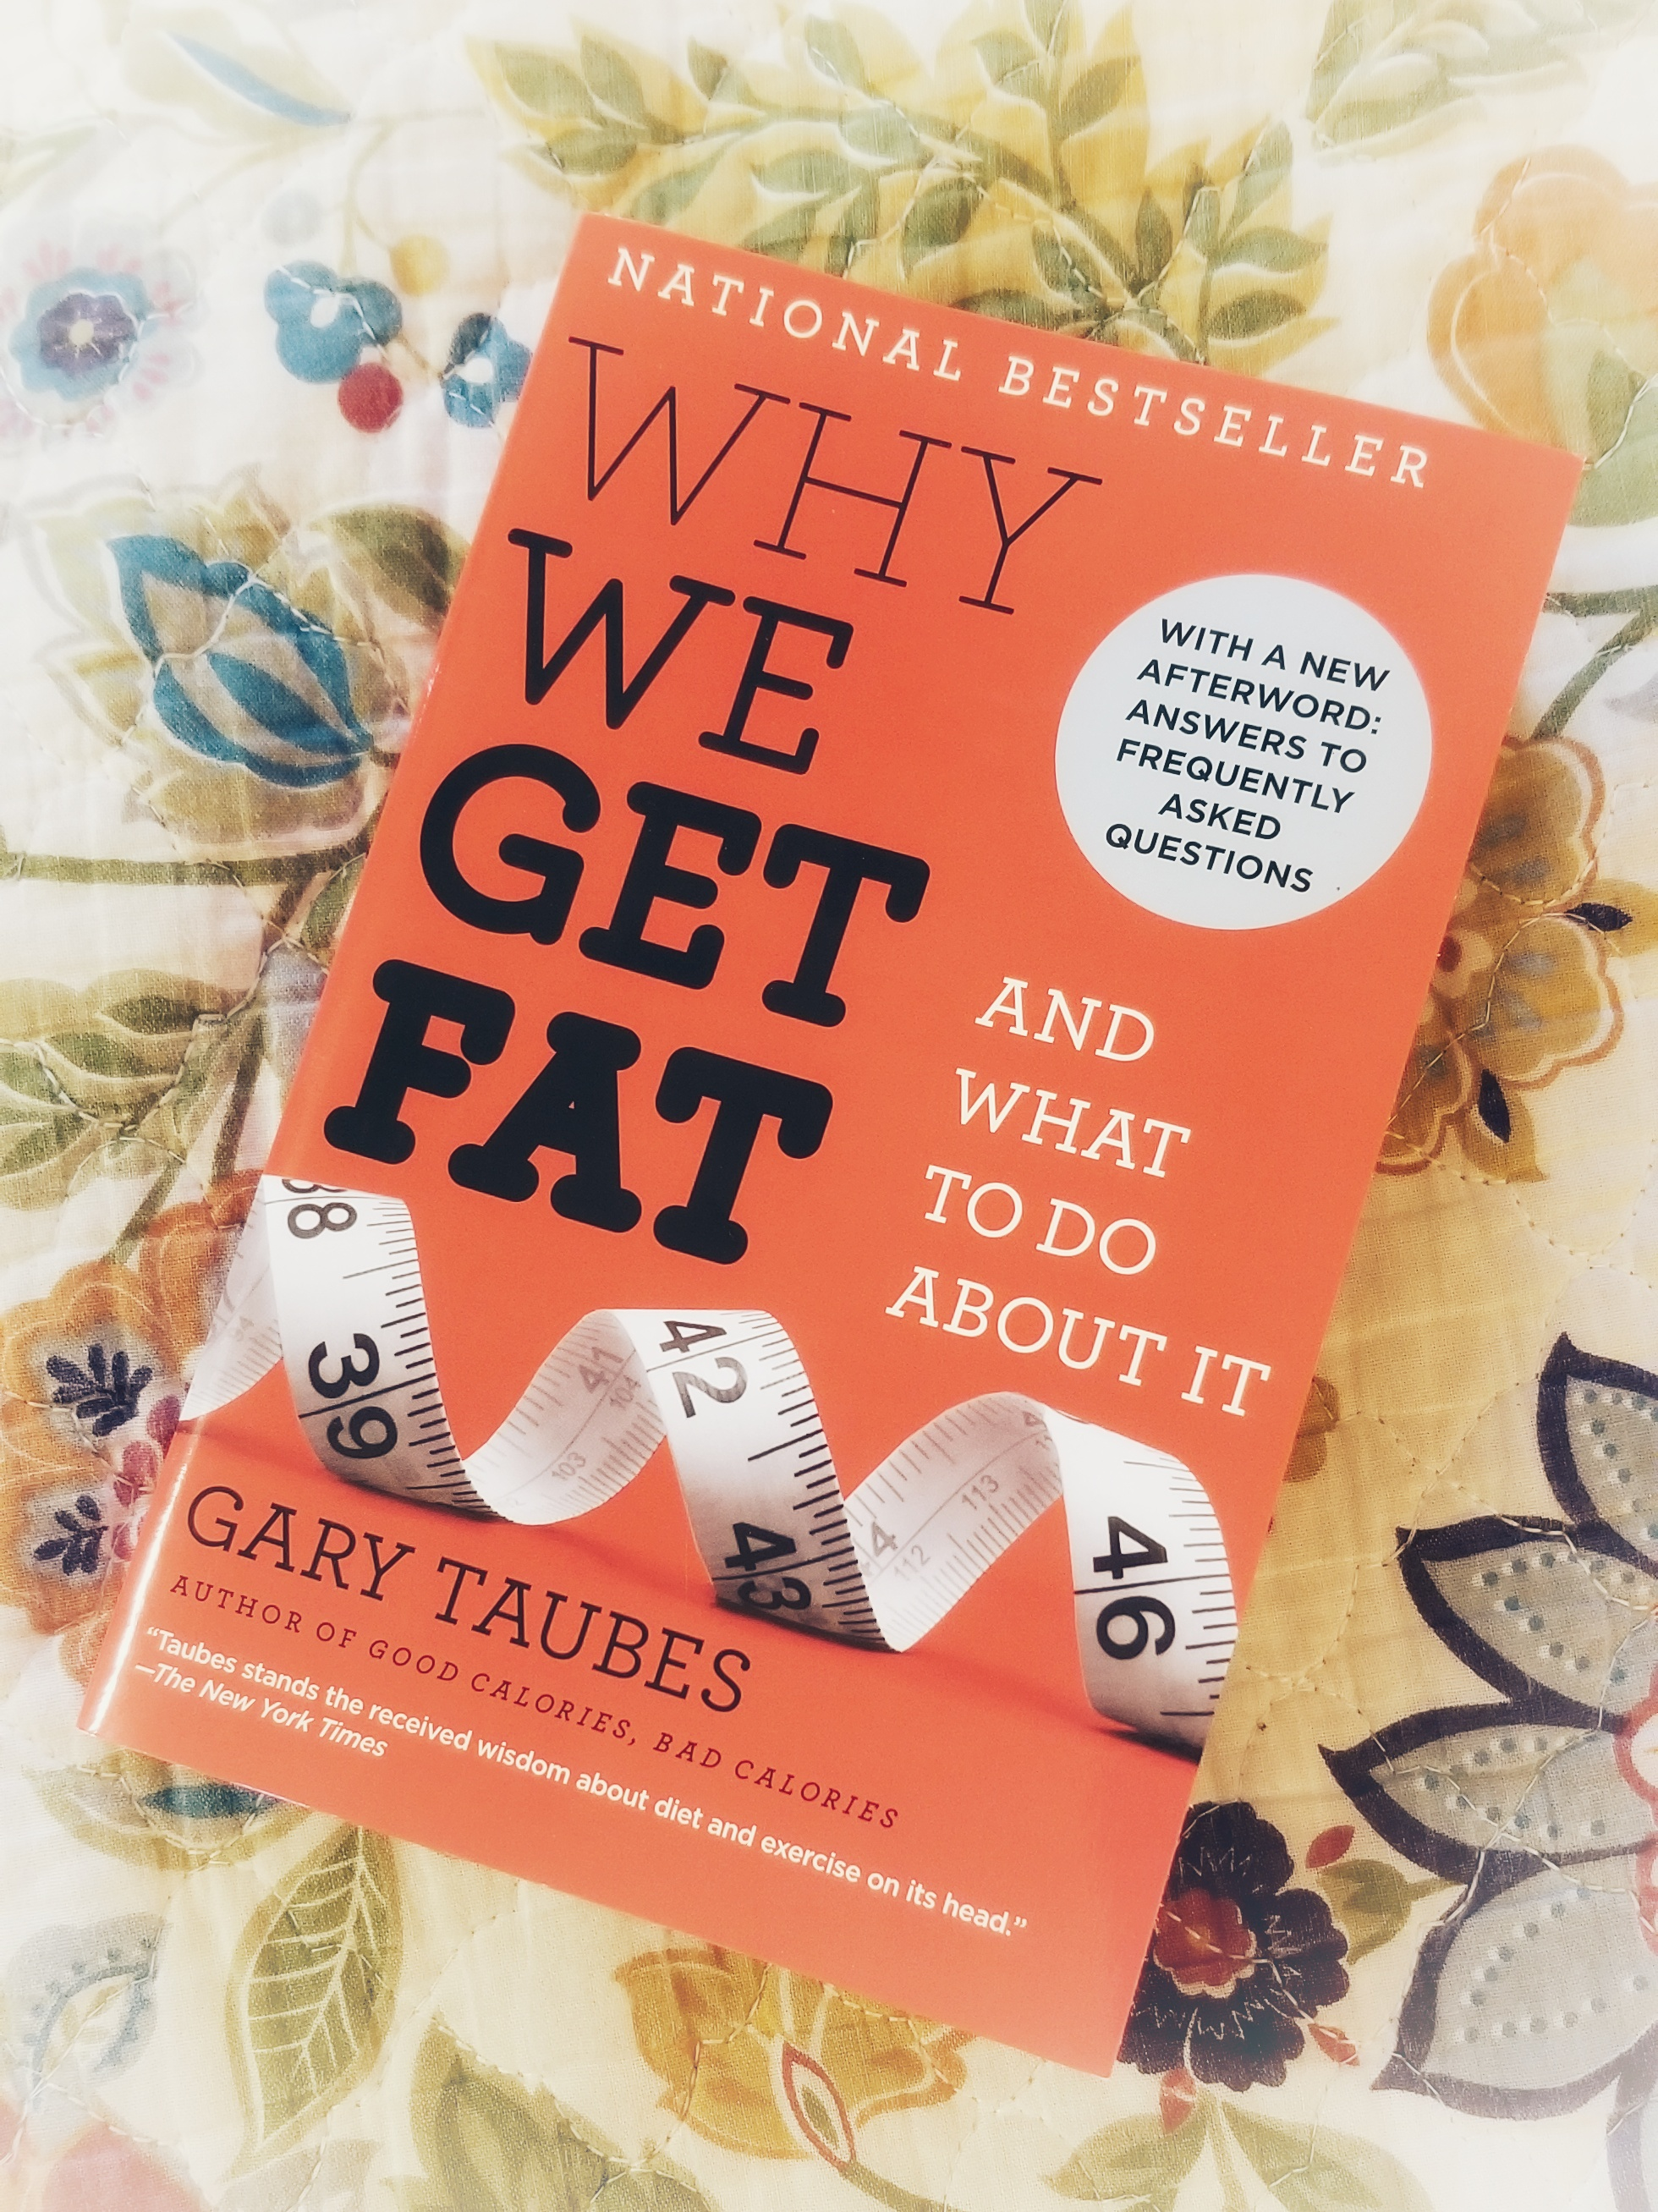 Why We Get Fat and What To Do About It by Gary Taubes